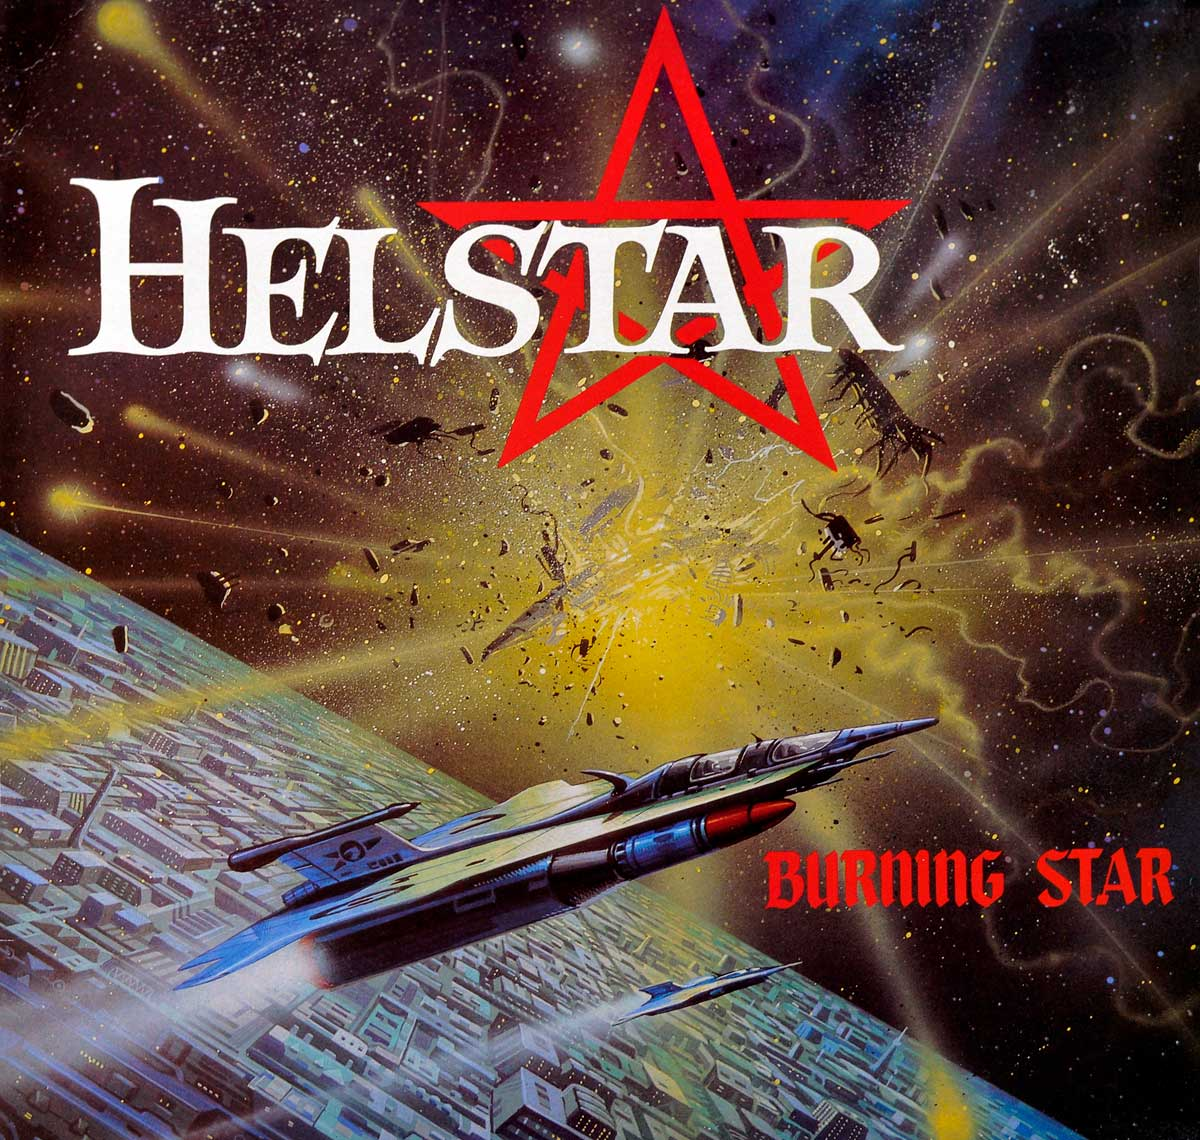 large photo of the album front cover of: HELSTAR Burning Star